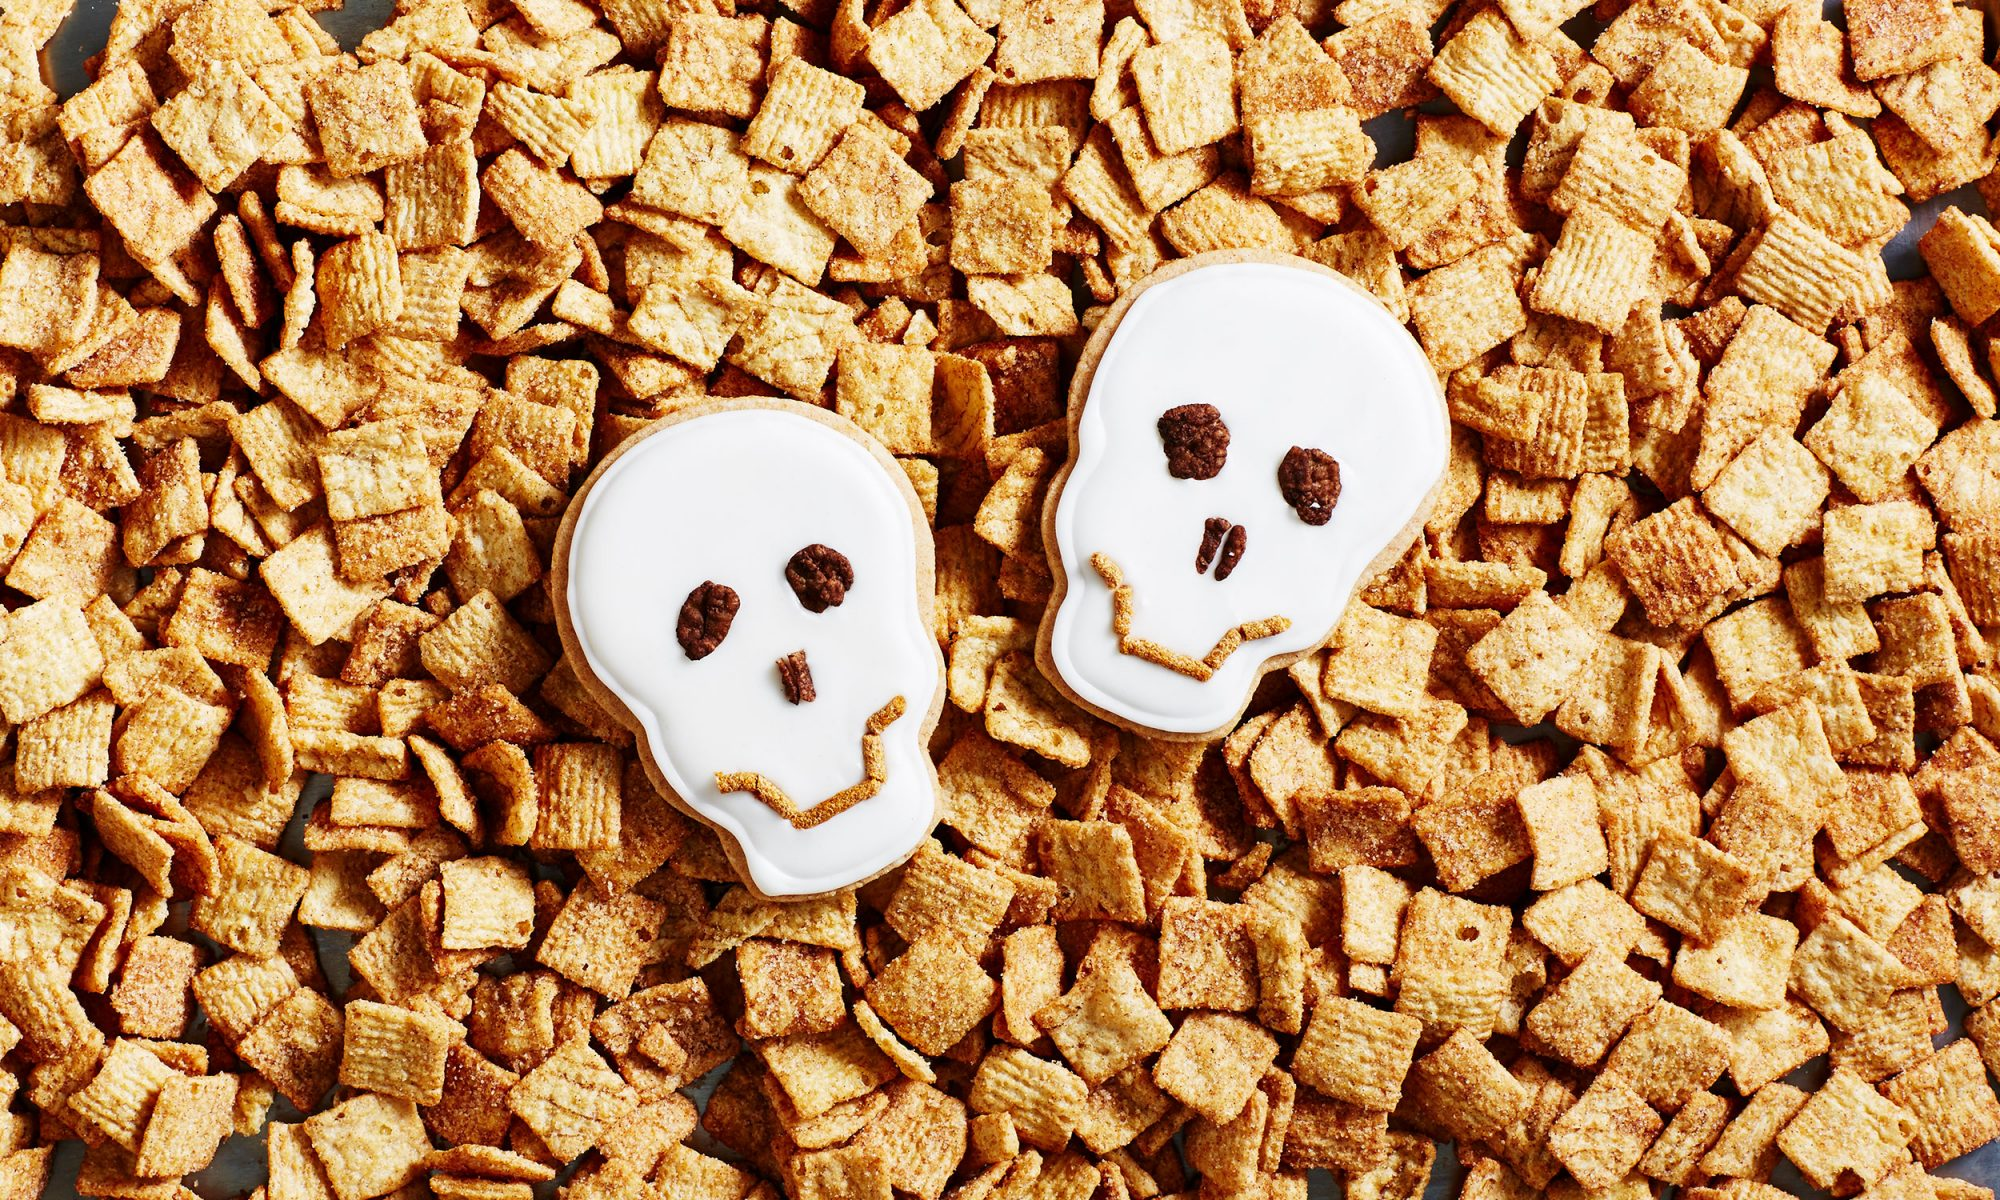 These Skull Cookies Are Made of Cereal So You Can Eat Them for Breakfast